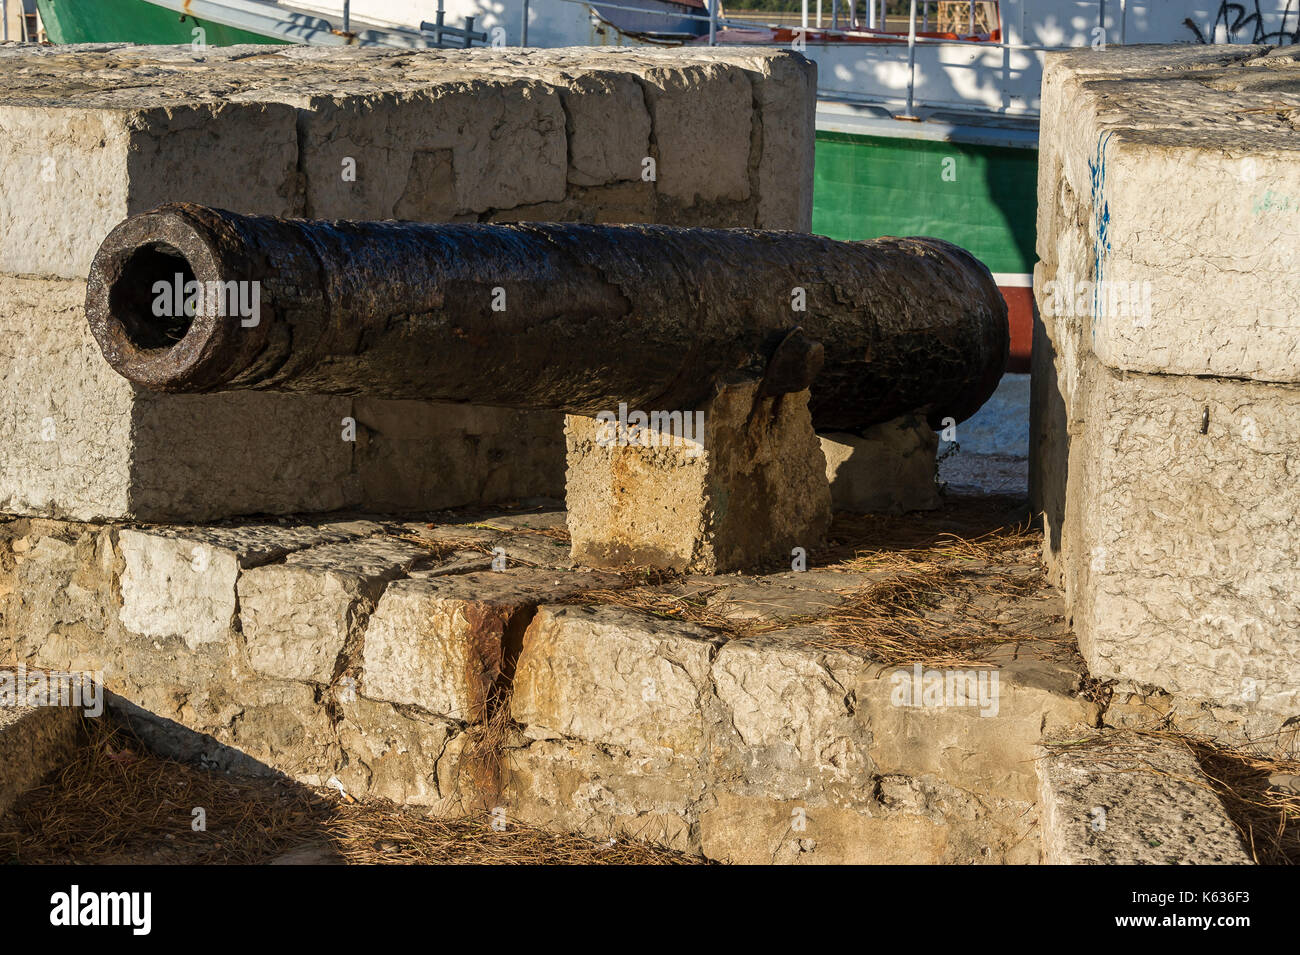 Canon, Môle Bérouard, La Ciotat, BDR, France 13 Stock Photo